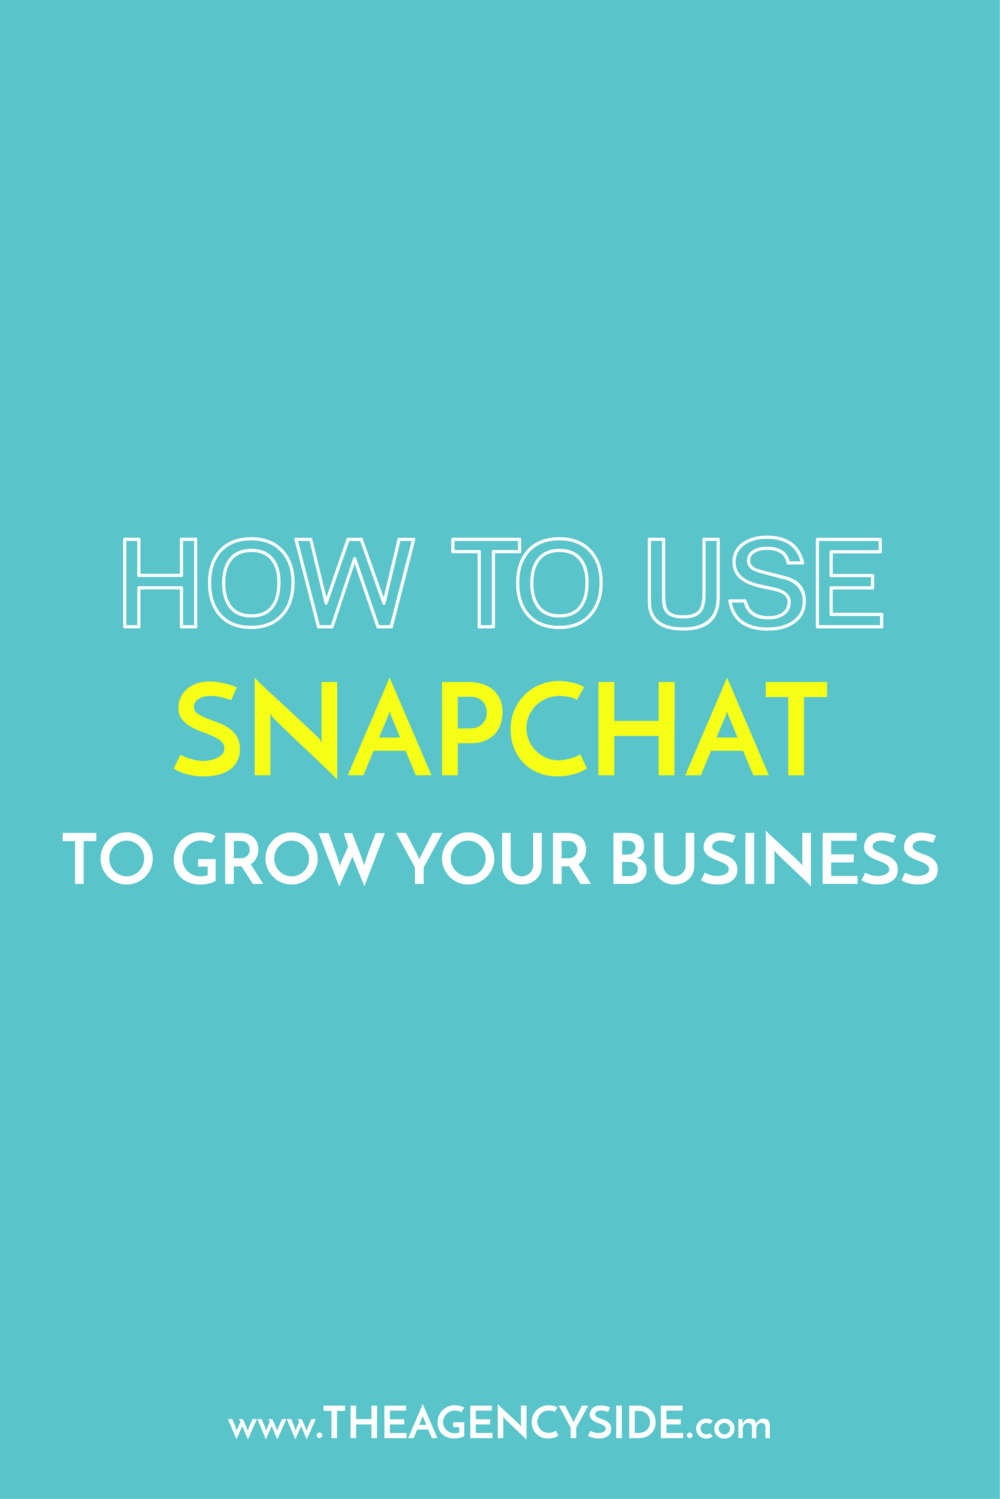 how to use snapchat to grow your business.png